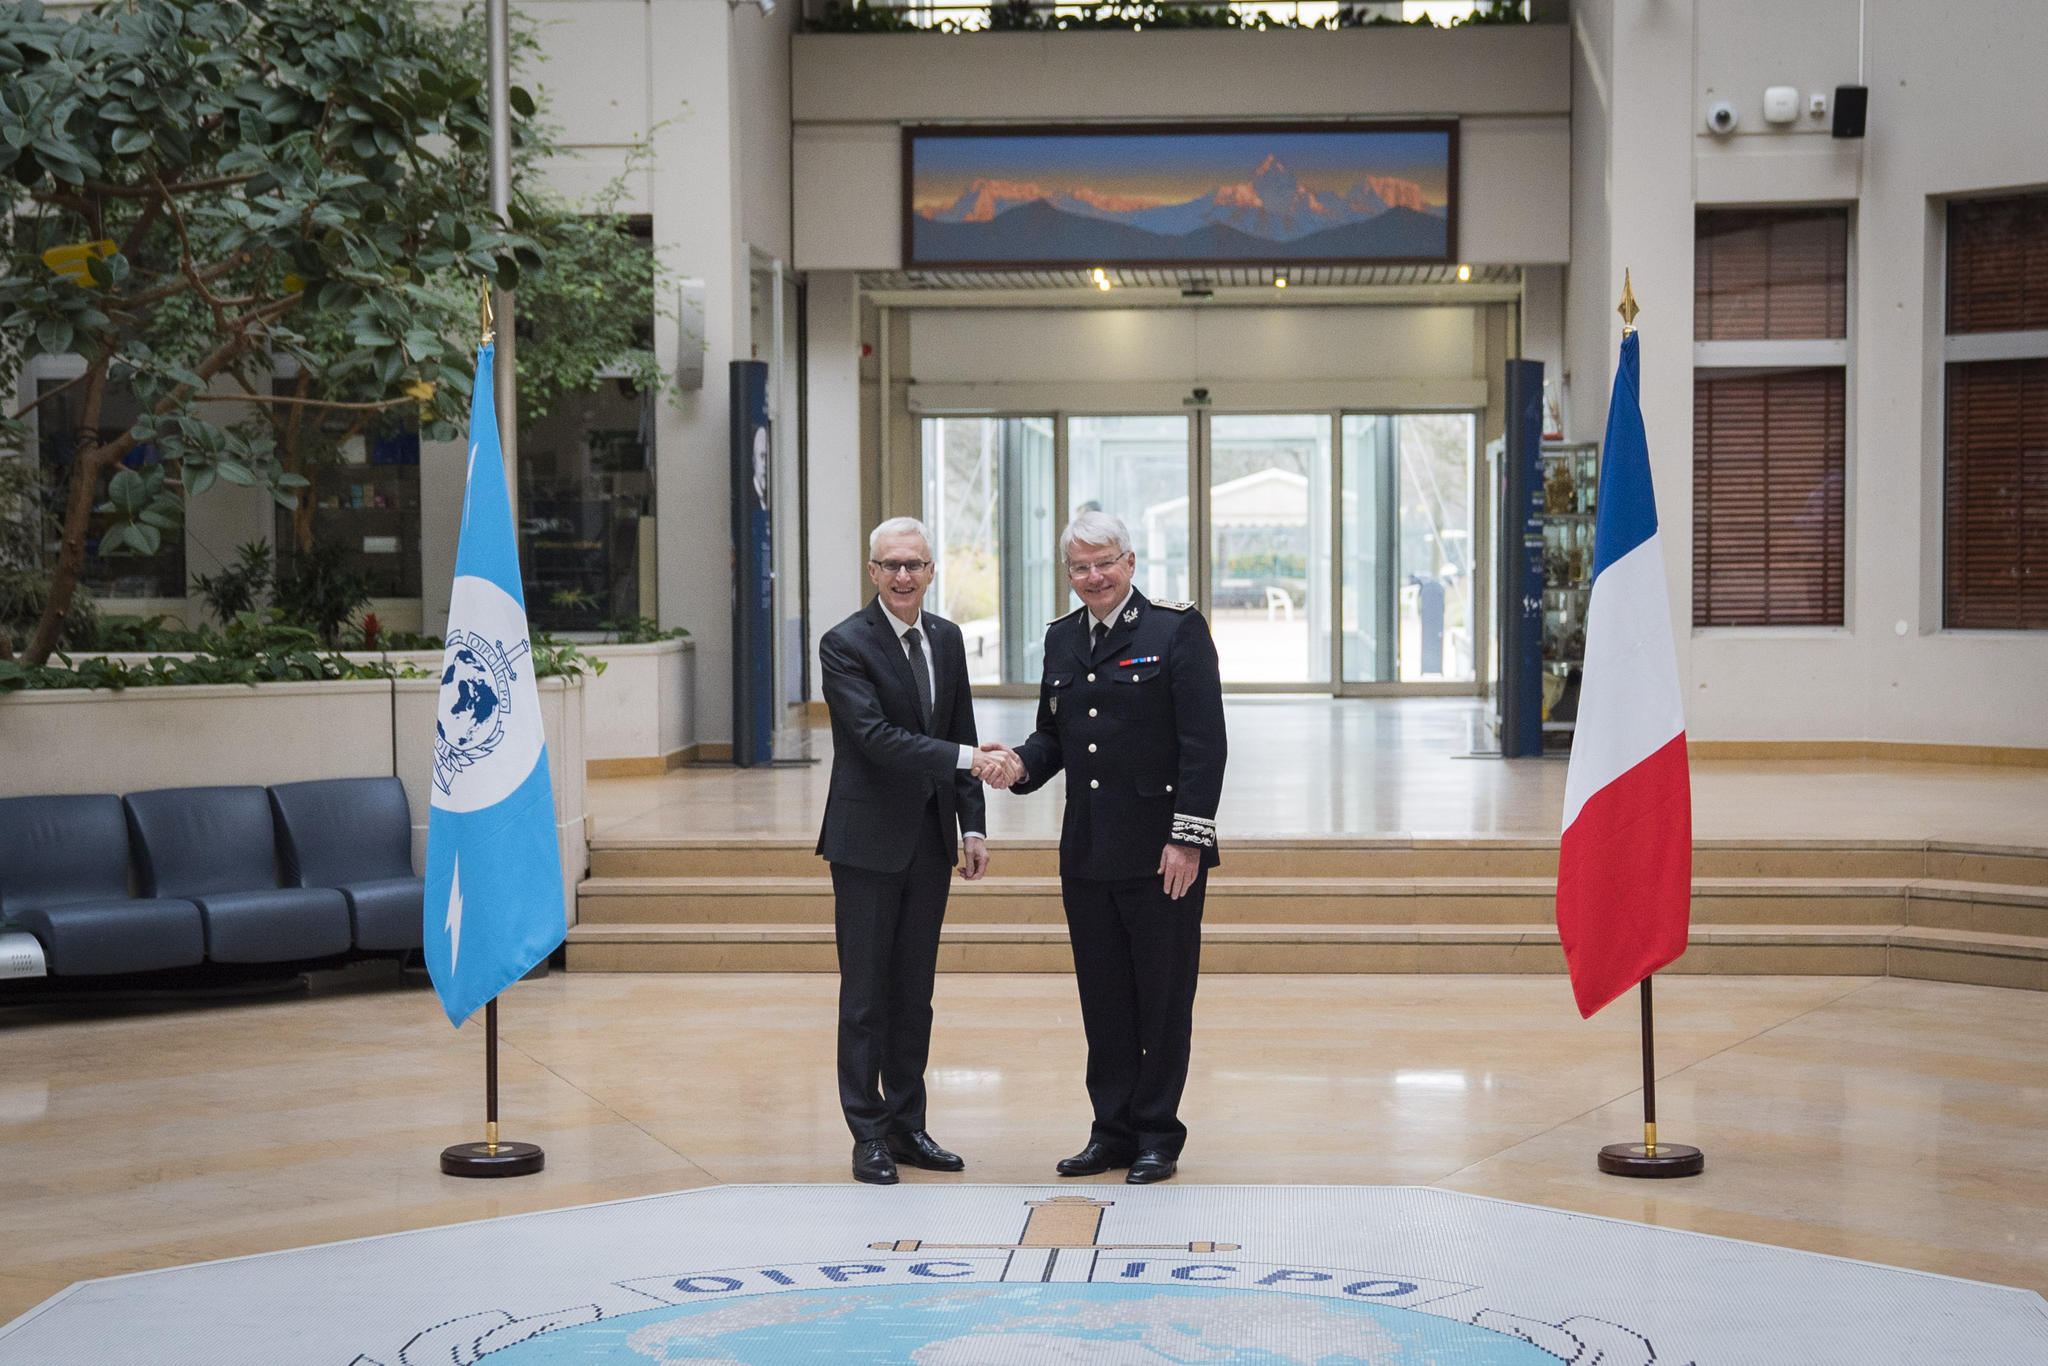 Director General of the French National Police